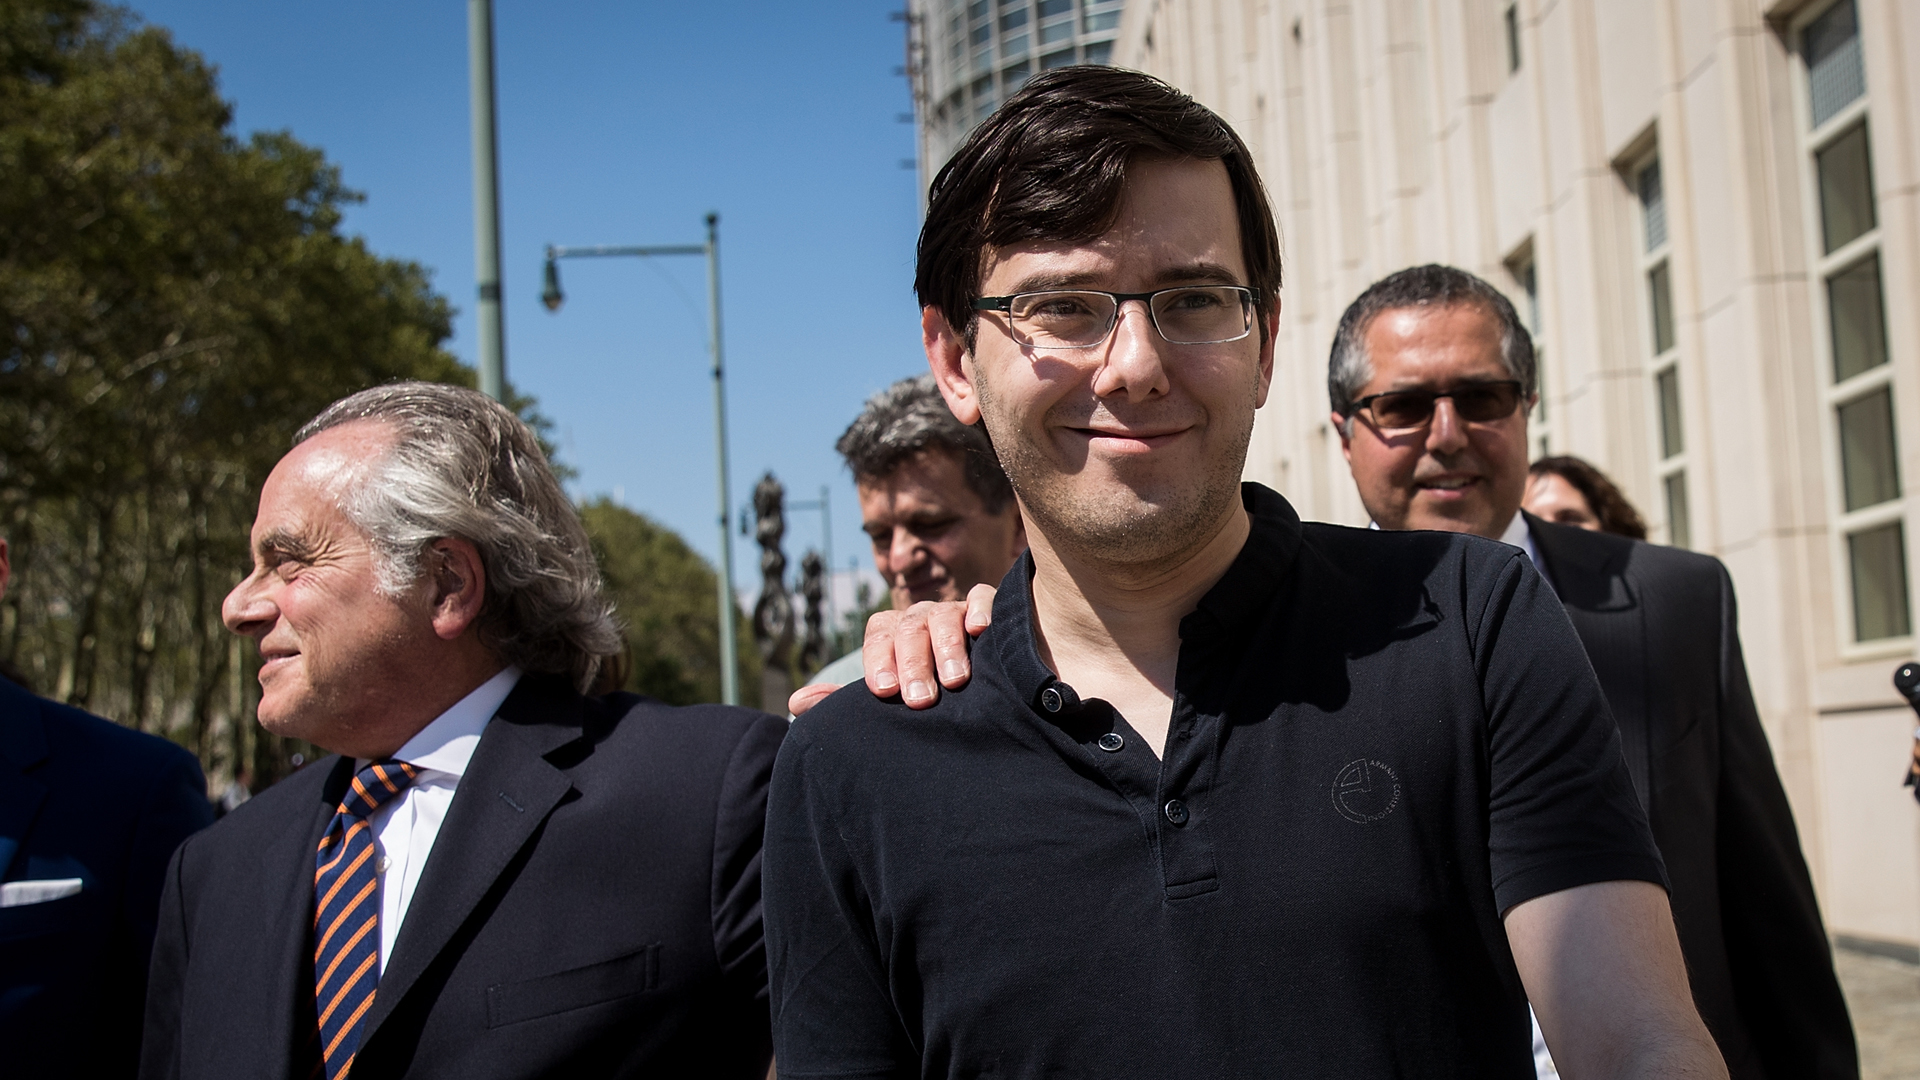 Former pharmaceutical executive Martin Shkreli after the jury issued a verdict at the U.S. District Court for the Eastern District of New York in Brooklyn on Aug. 4, 2017. (Credit: Drew Angerer/Getty Images)